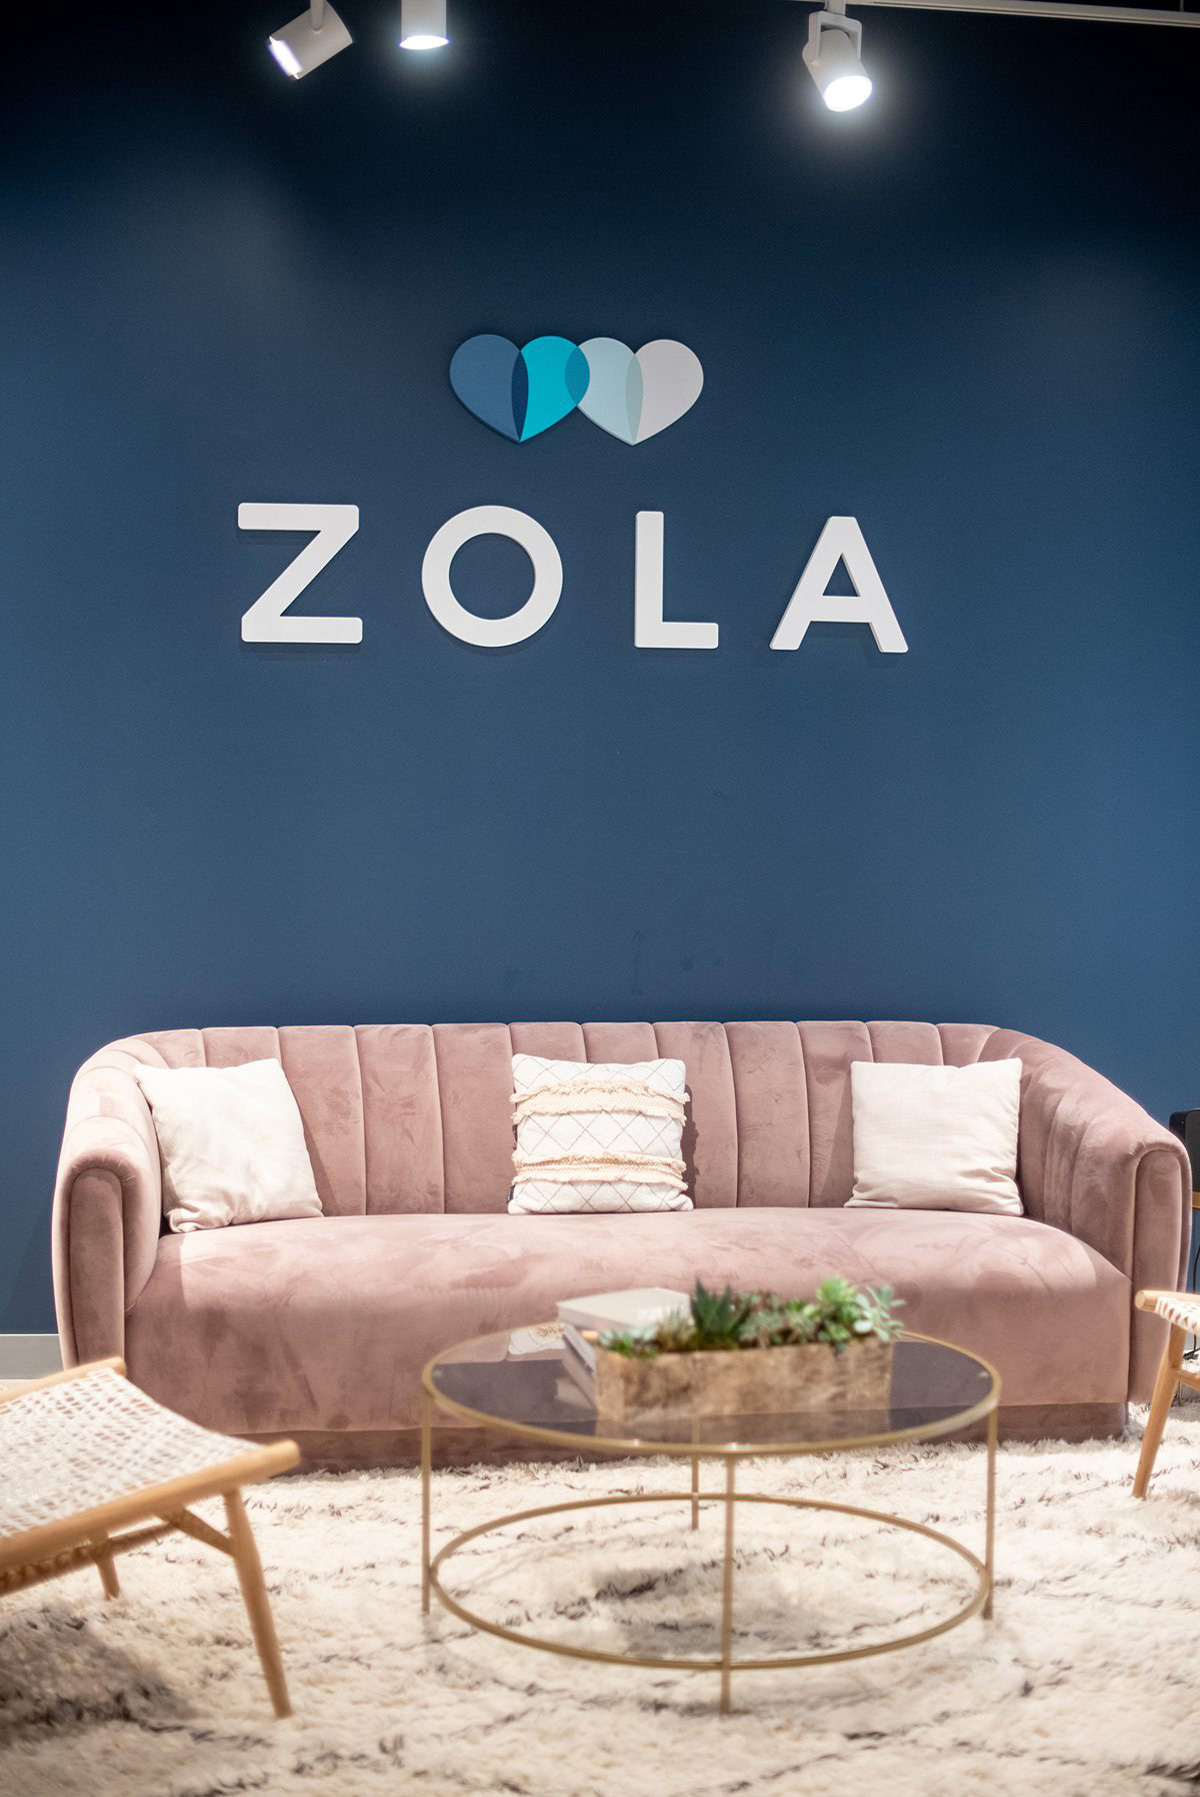 Zola headquarters in NYC. Full post of a look behind the scenes of the wedding website's offices by Mikkel Paige Photography. #zola #mikkelpaige